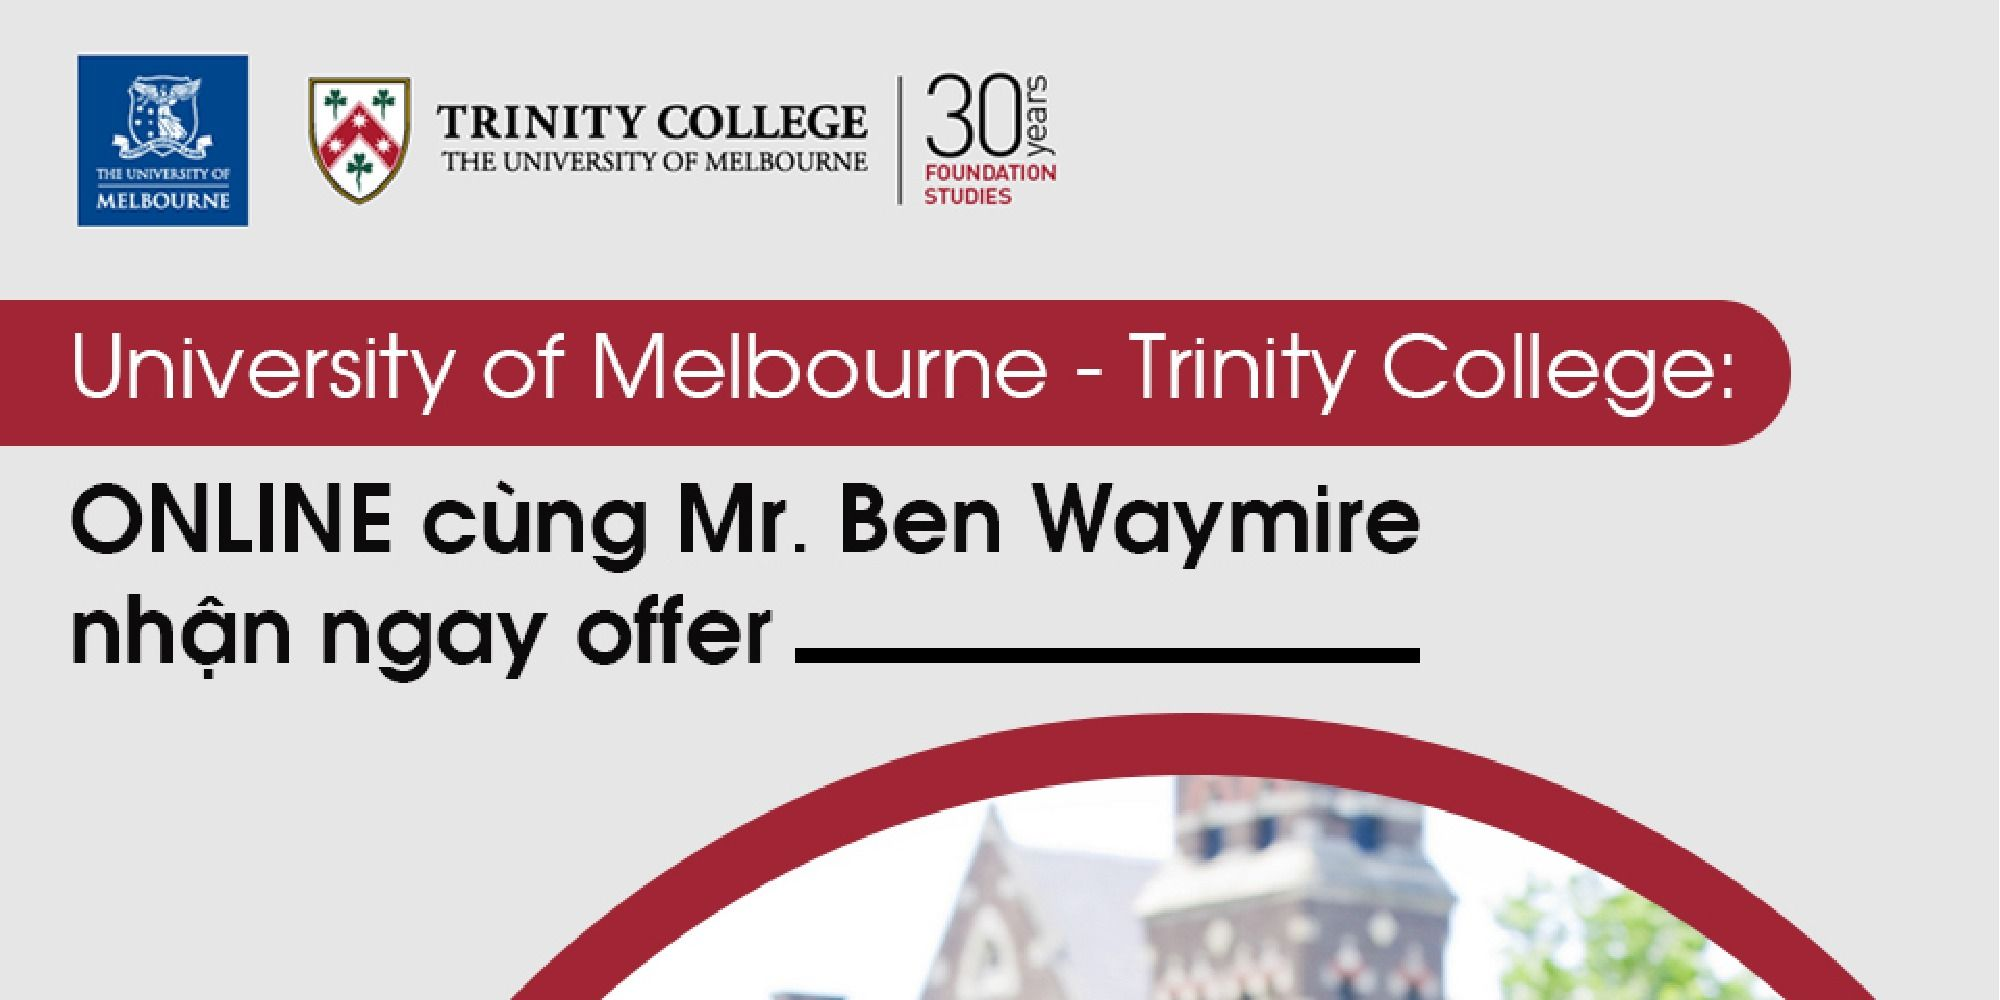 University of Melbourne- Trinity College: ONLINE cùng Mr. Ben Waymire- nhận ngay offer